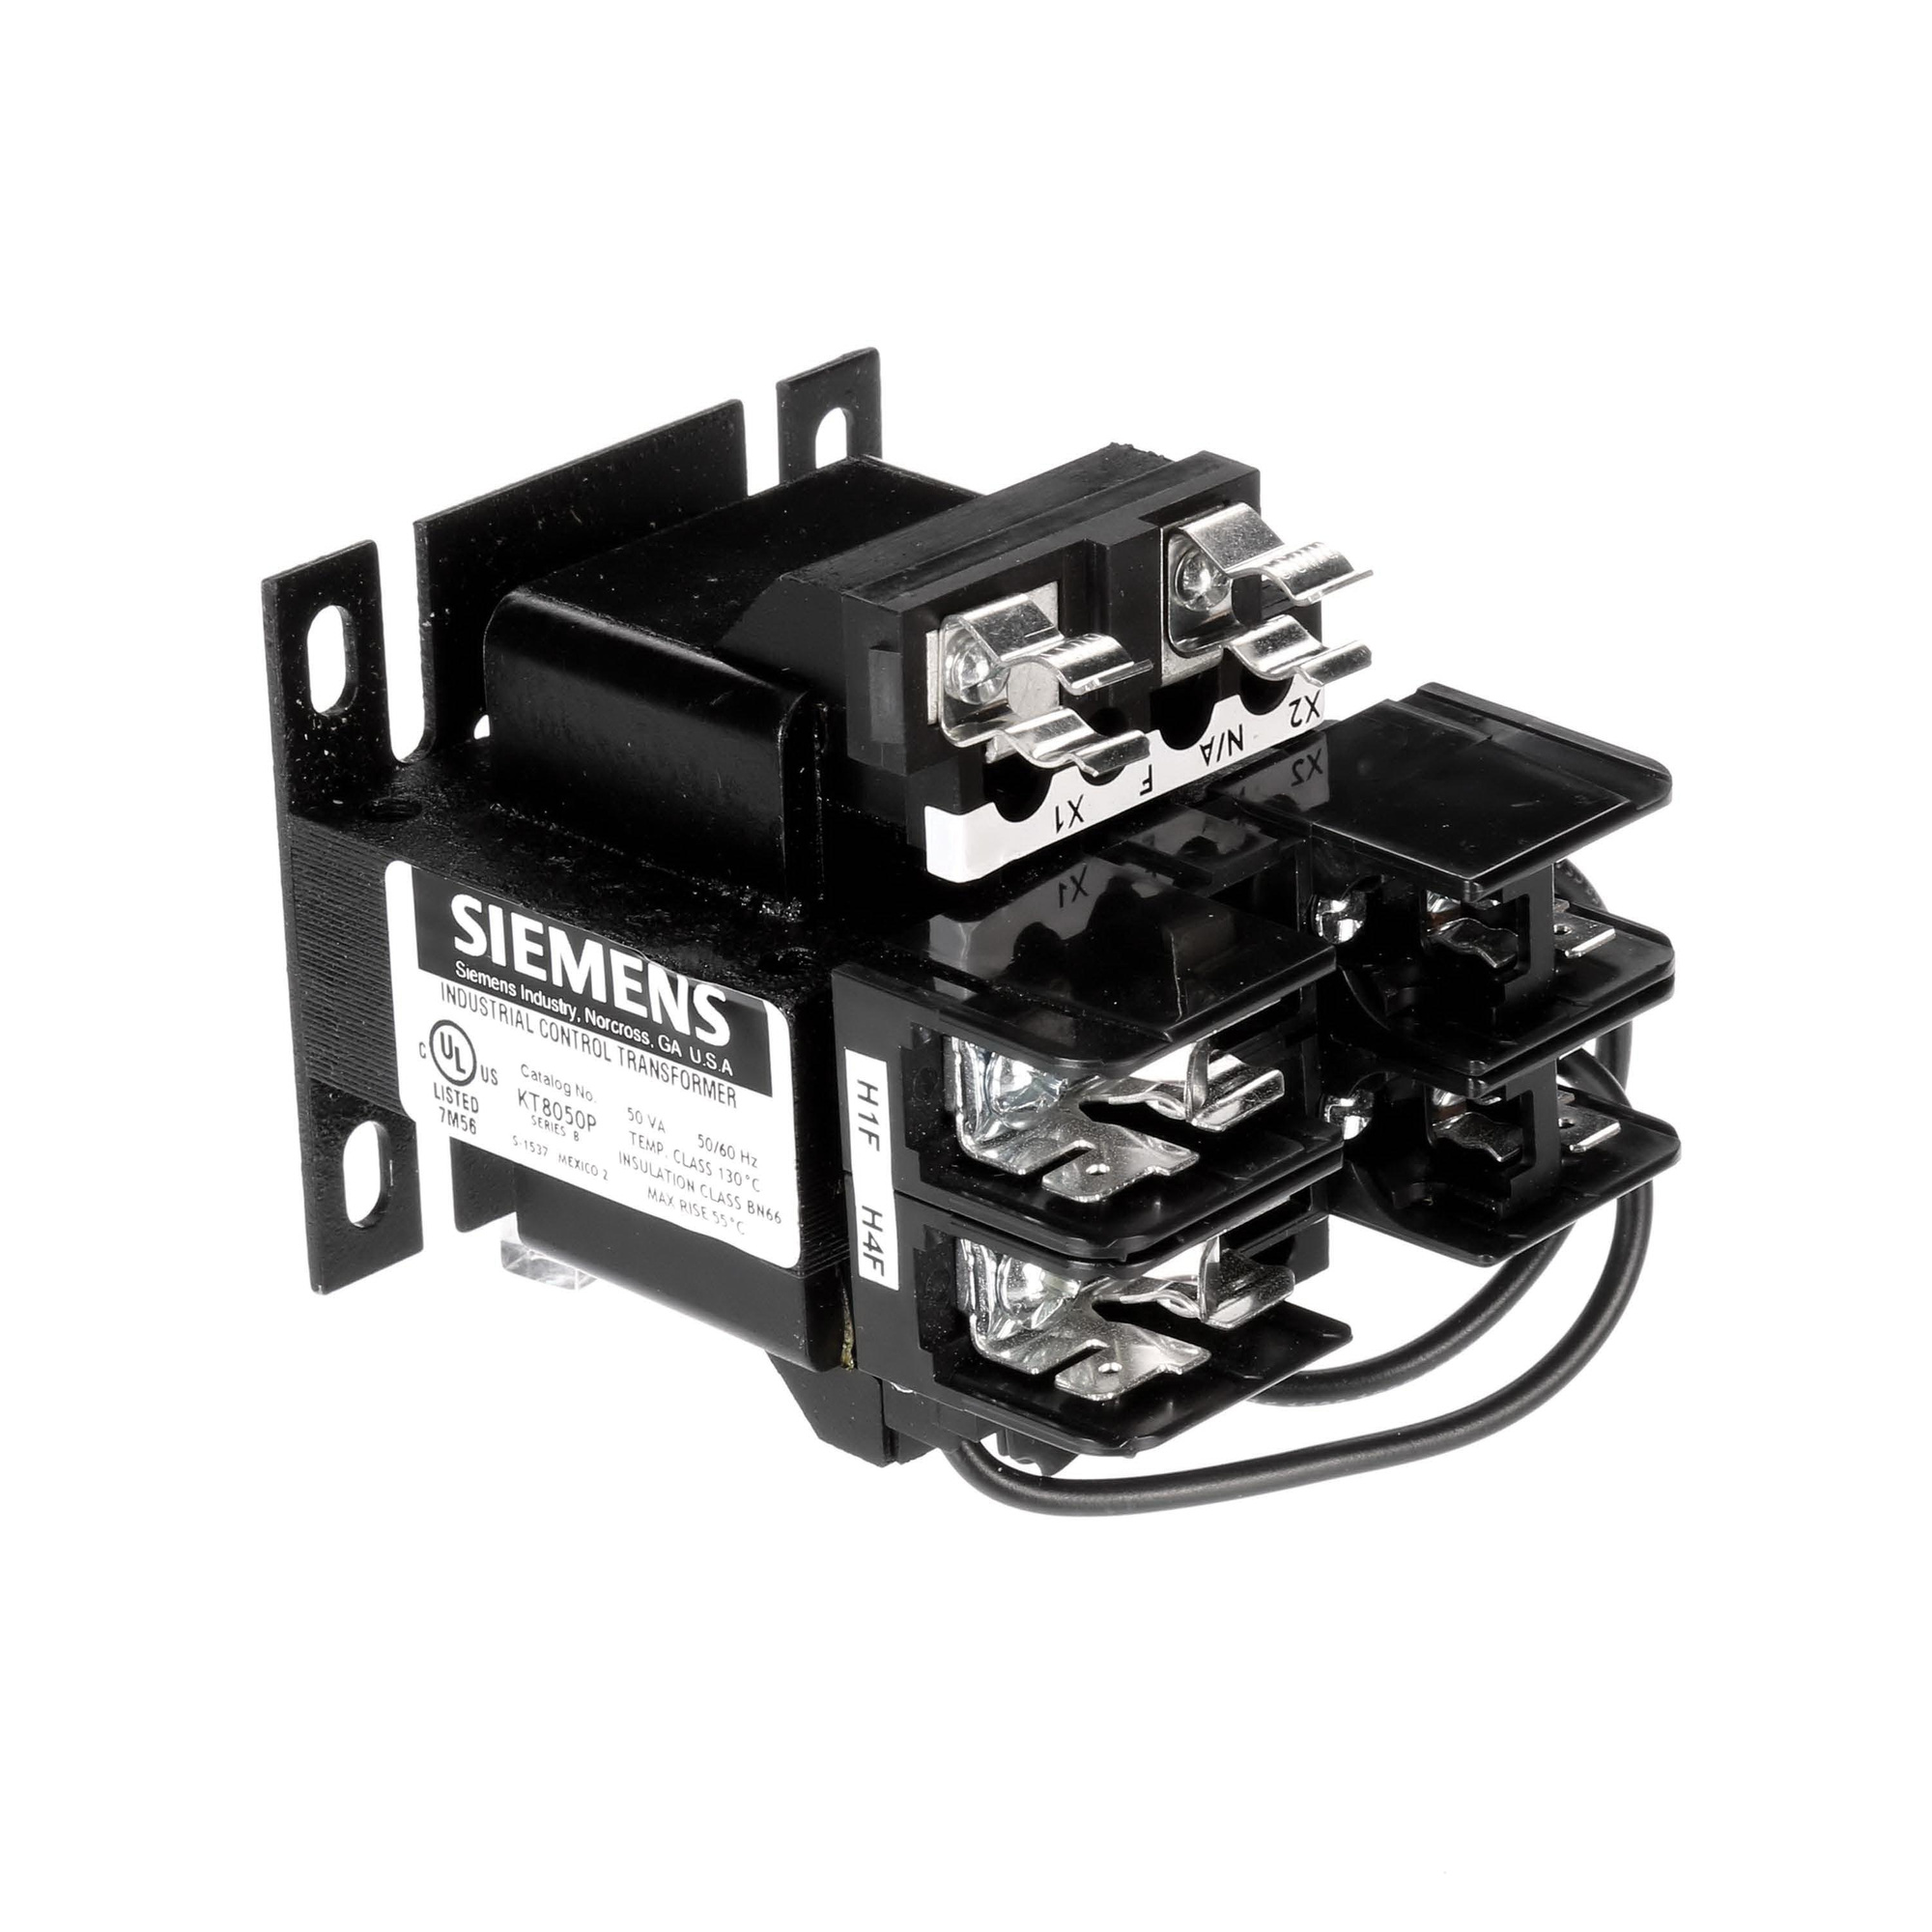 hight resolution of siemens kt8050p 1 phase control power transformer 230 460 volt ac primary 120